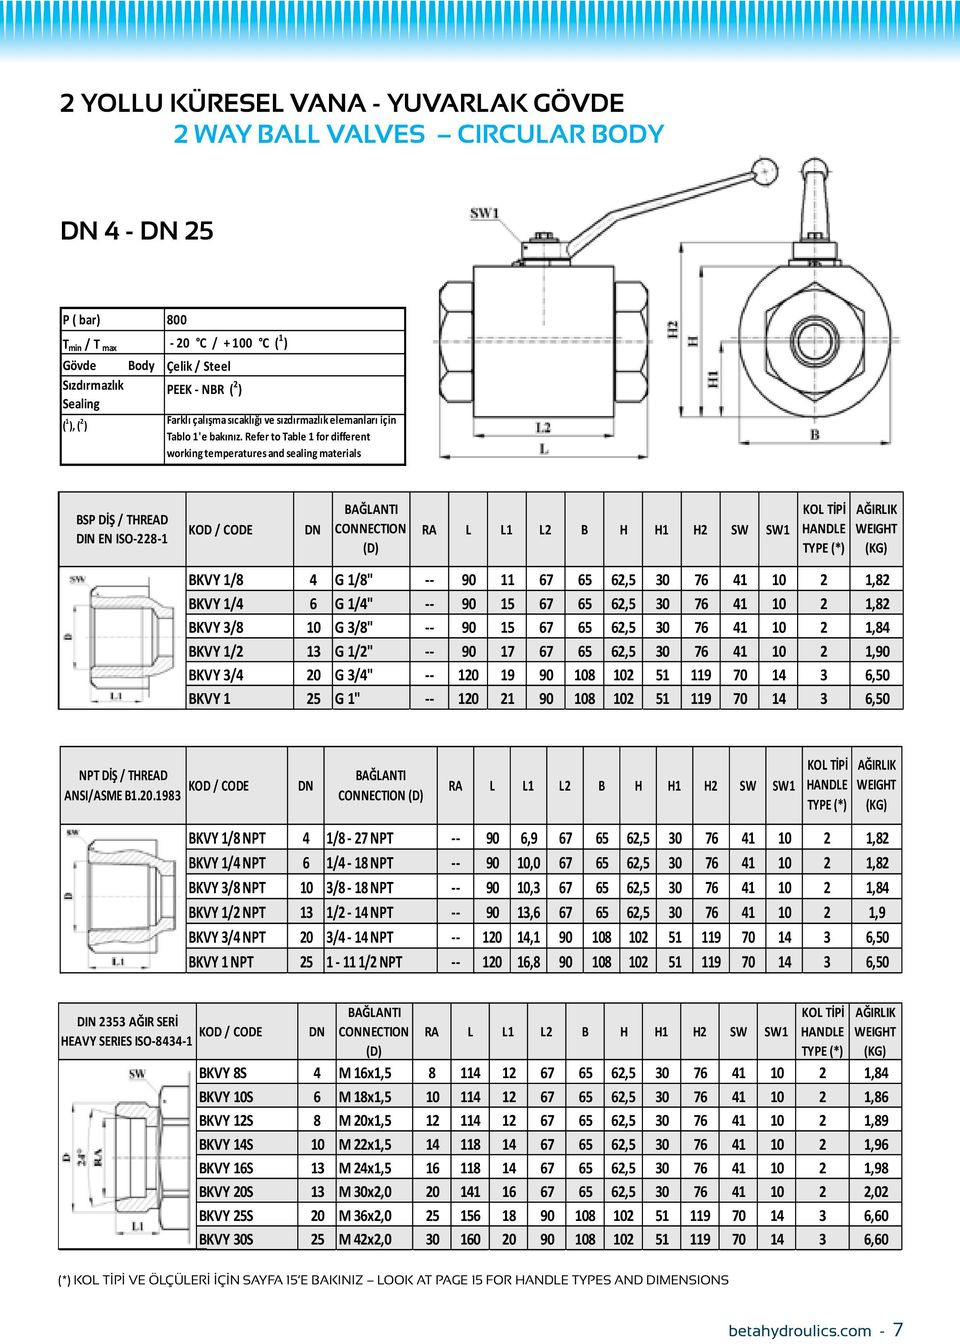 "Refer to Table 1 for different working temperatures and sealing materials BSP DİŞ / THREAD DIN EN ISO-228-1 DN CONNECTION (D) RA L L1 L2 B H H1 H2 SW SW1 BKVY 1/8 4 G 1/8"" -- 90 11 67 65 62,5 30 76"